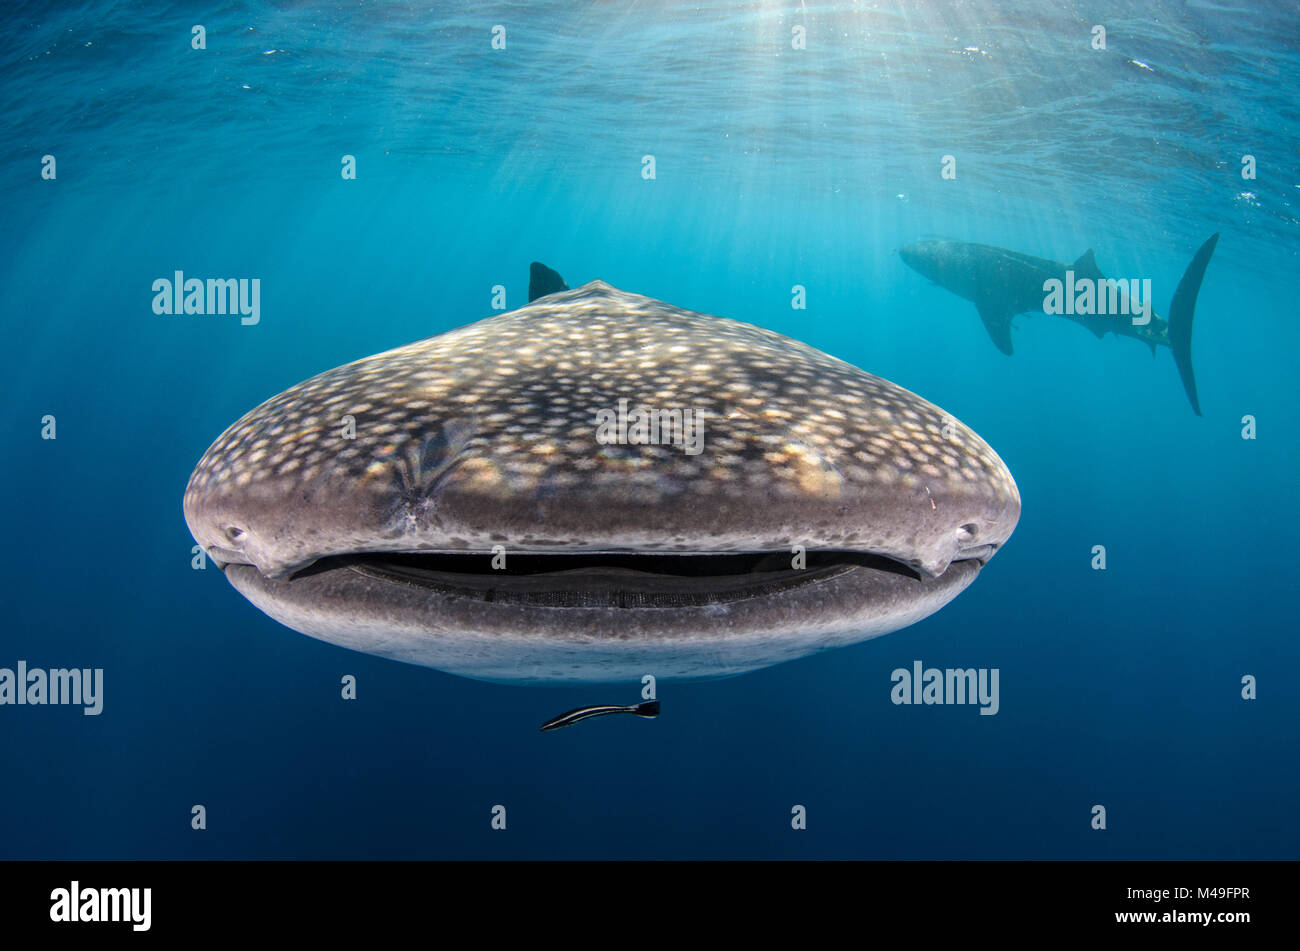 Whale shark (Rhincodon typus) front view portrait, Cenderawasih Bay, West Papua. Indonesia. - Stock Image